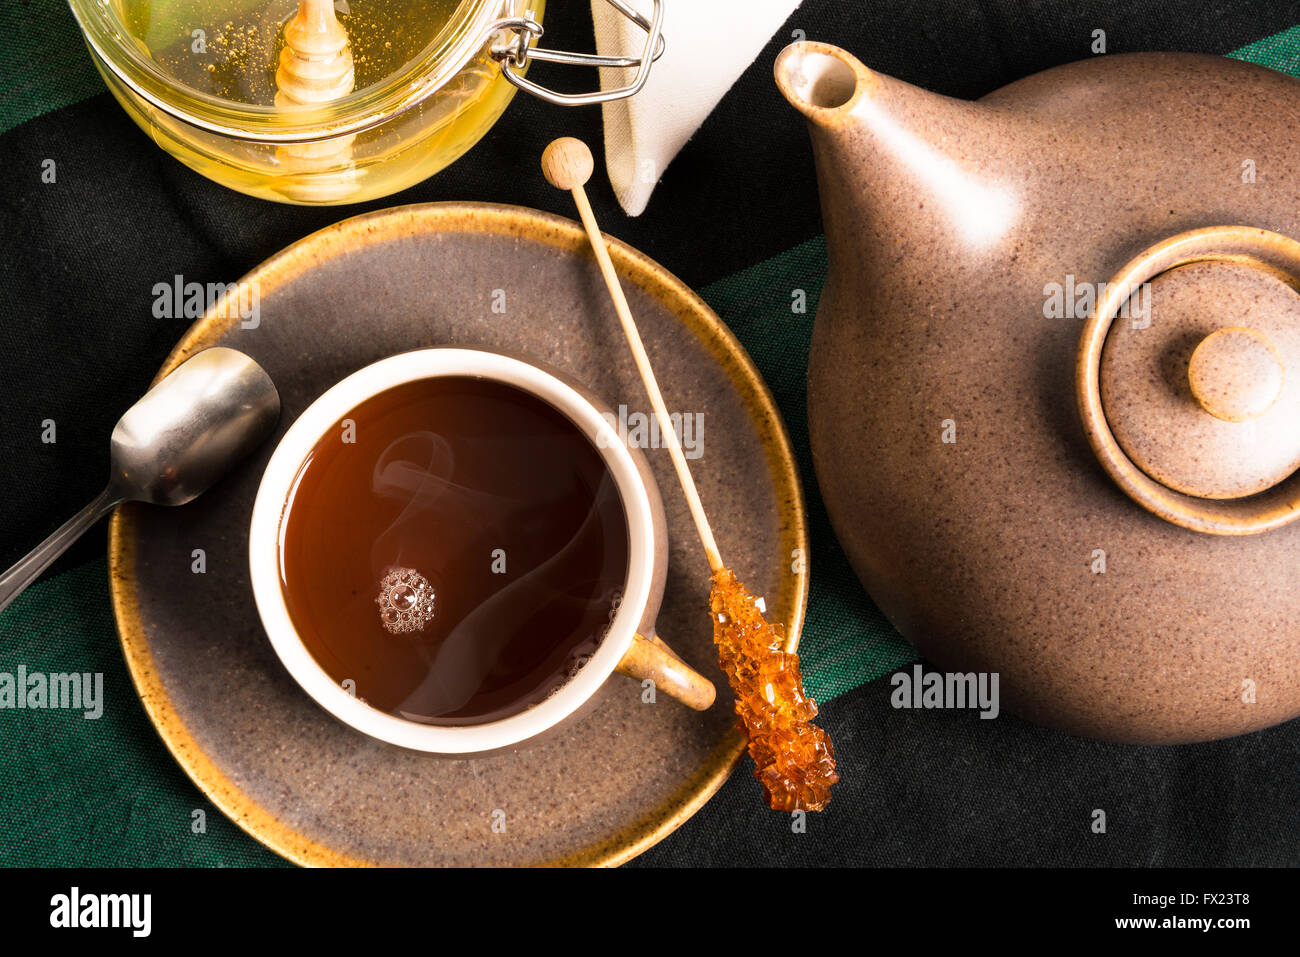 A cup of hot tea on a table with teapot and honey. Shot from above - Stock Image